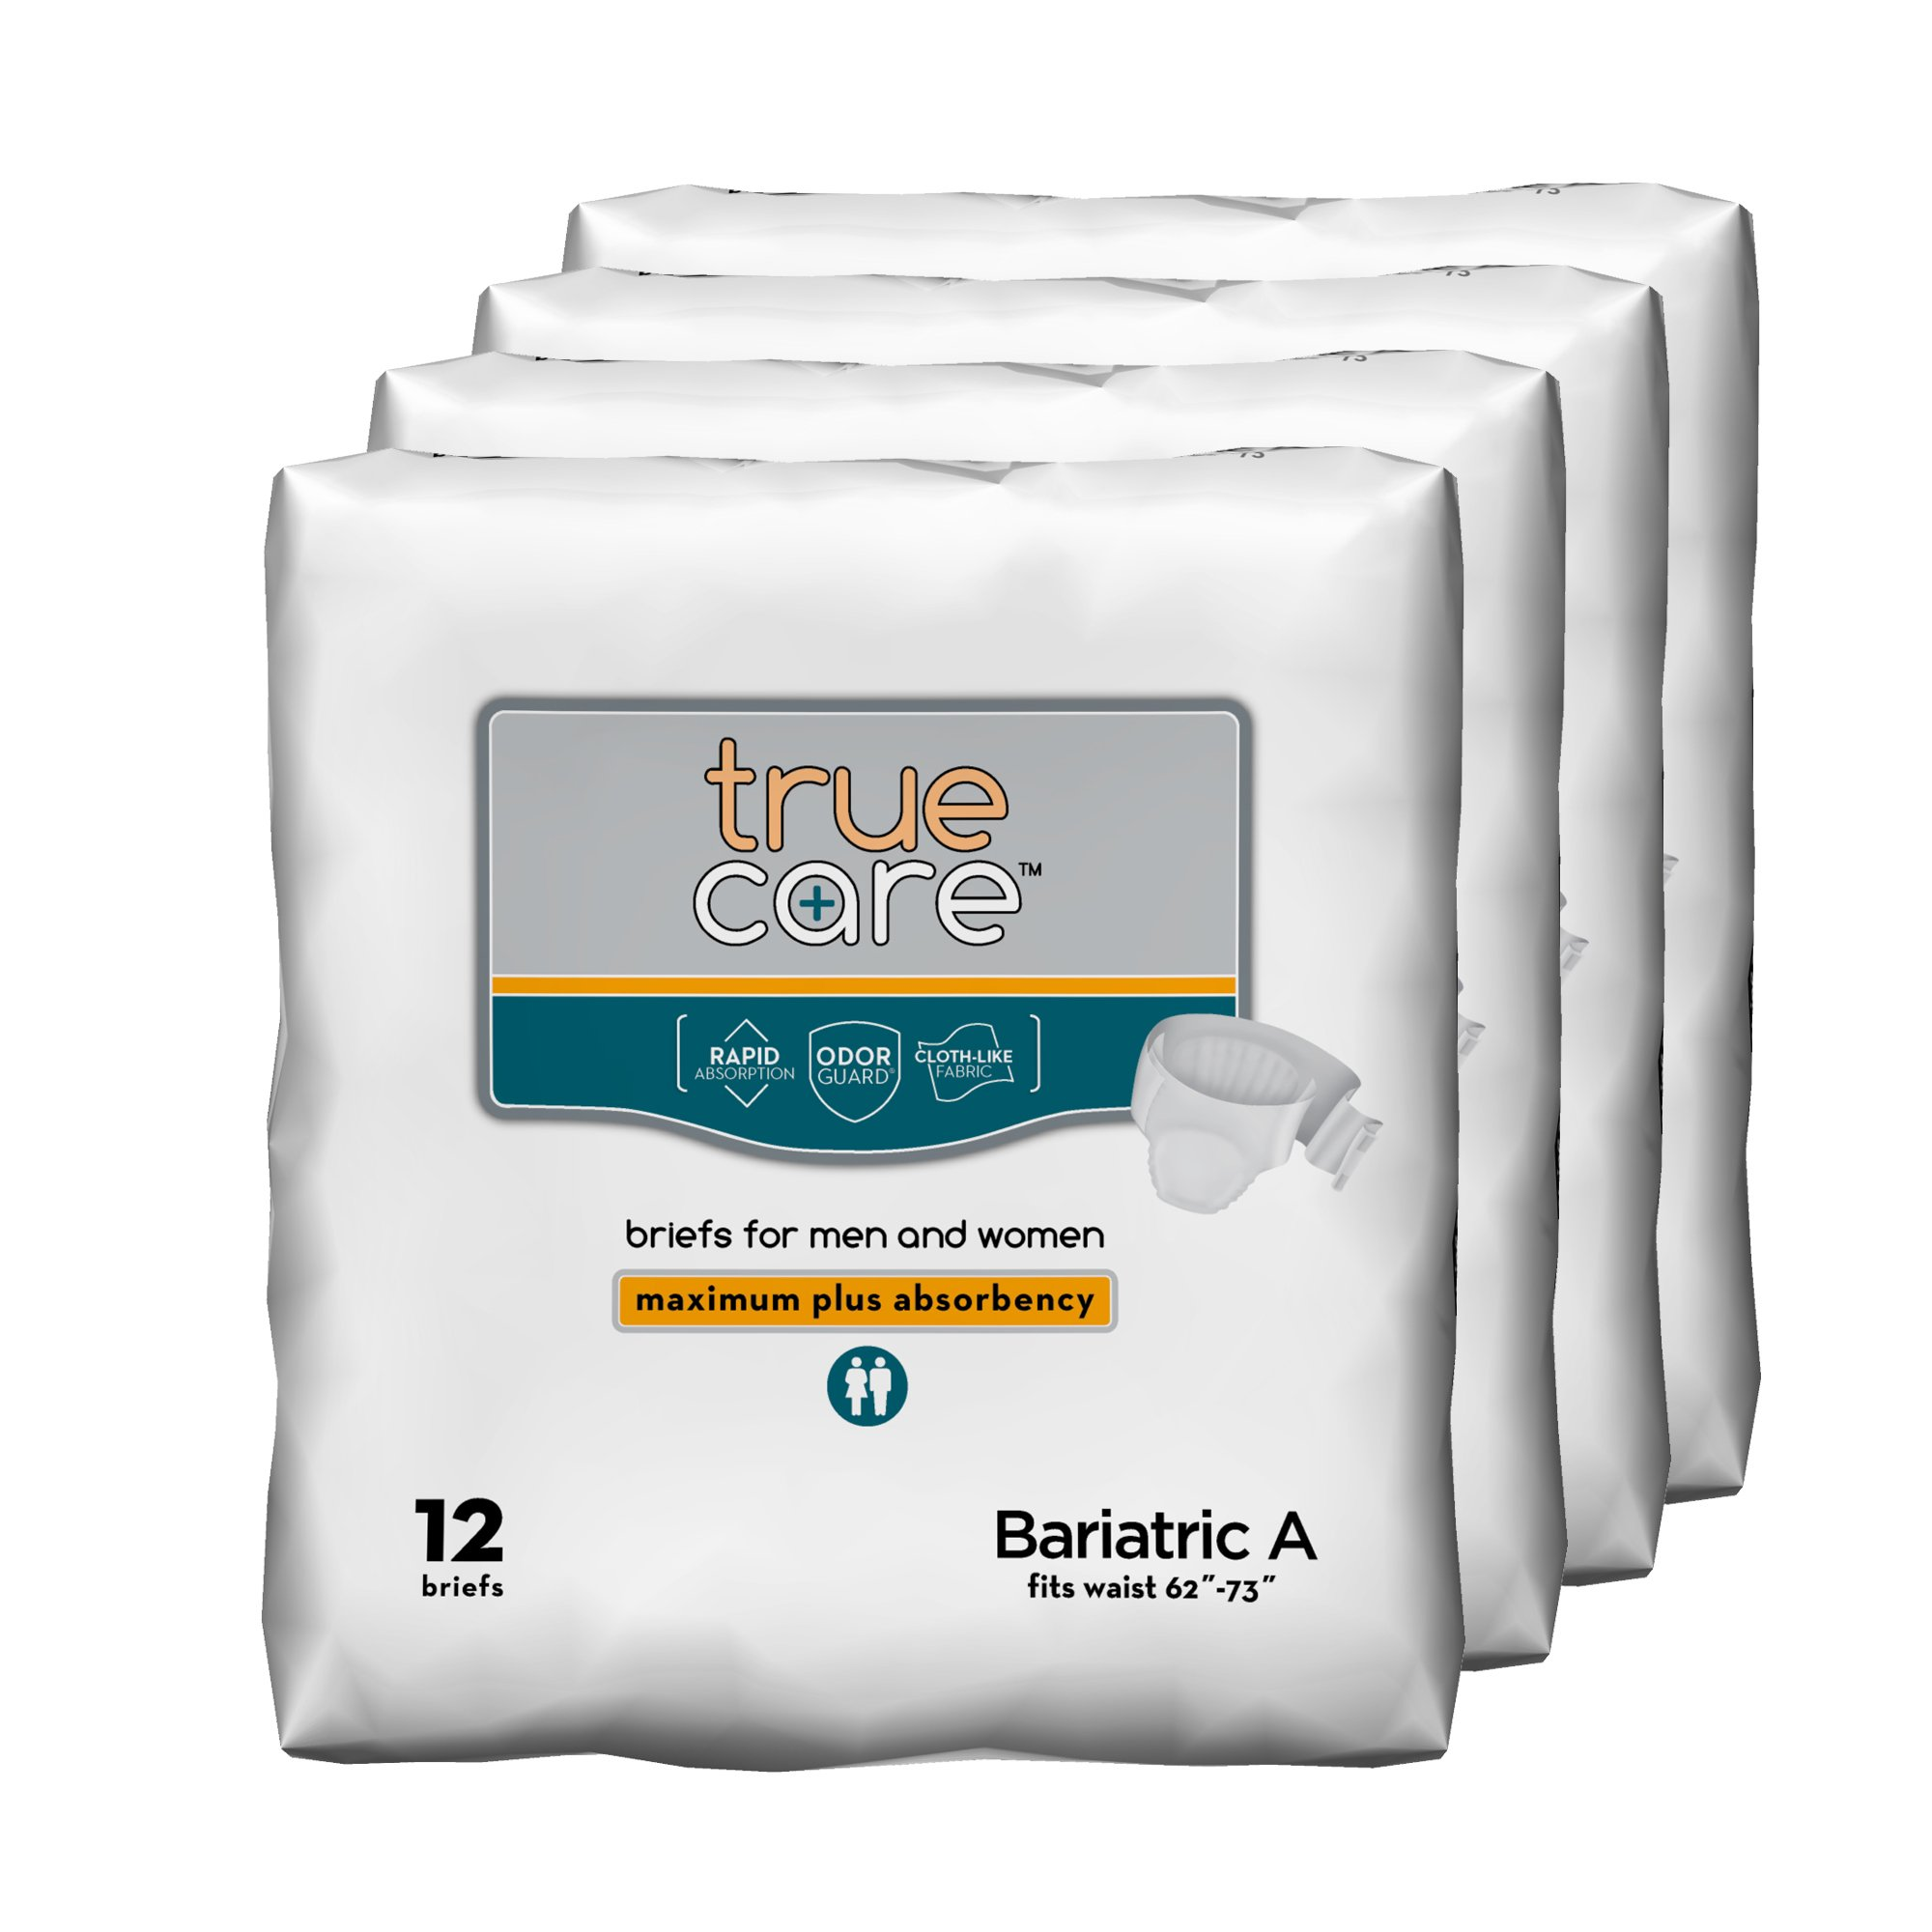 True Care Ultimate Absorbency Bariatric Incontinence Briefs, Size A, 48 Count